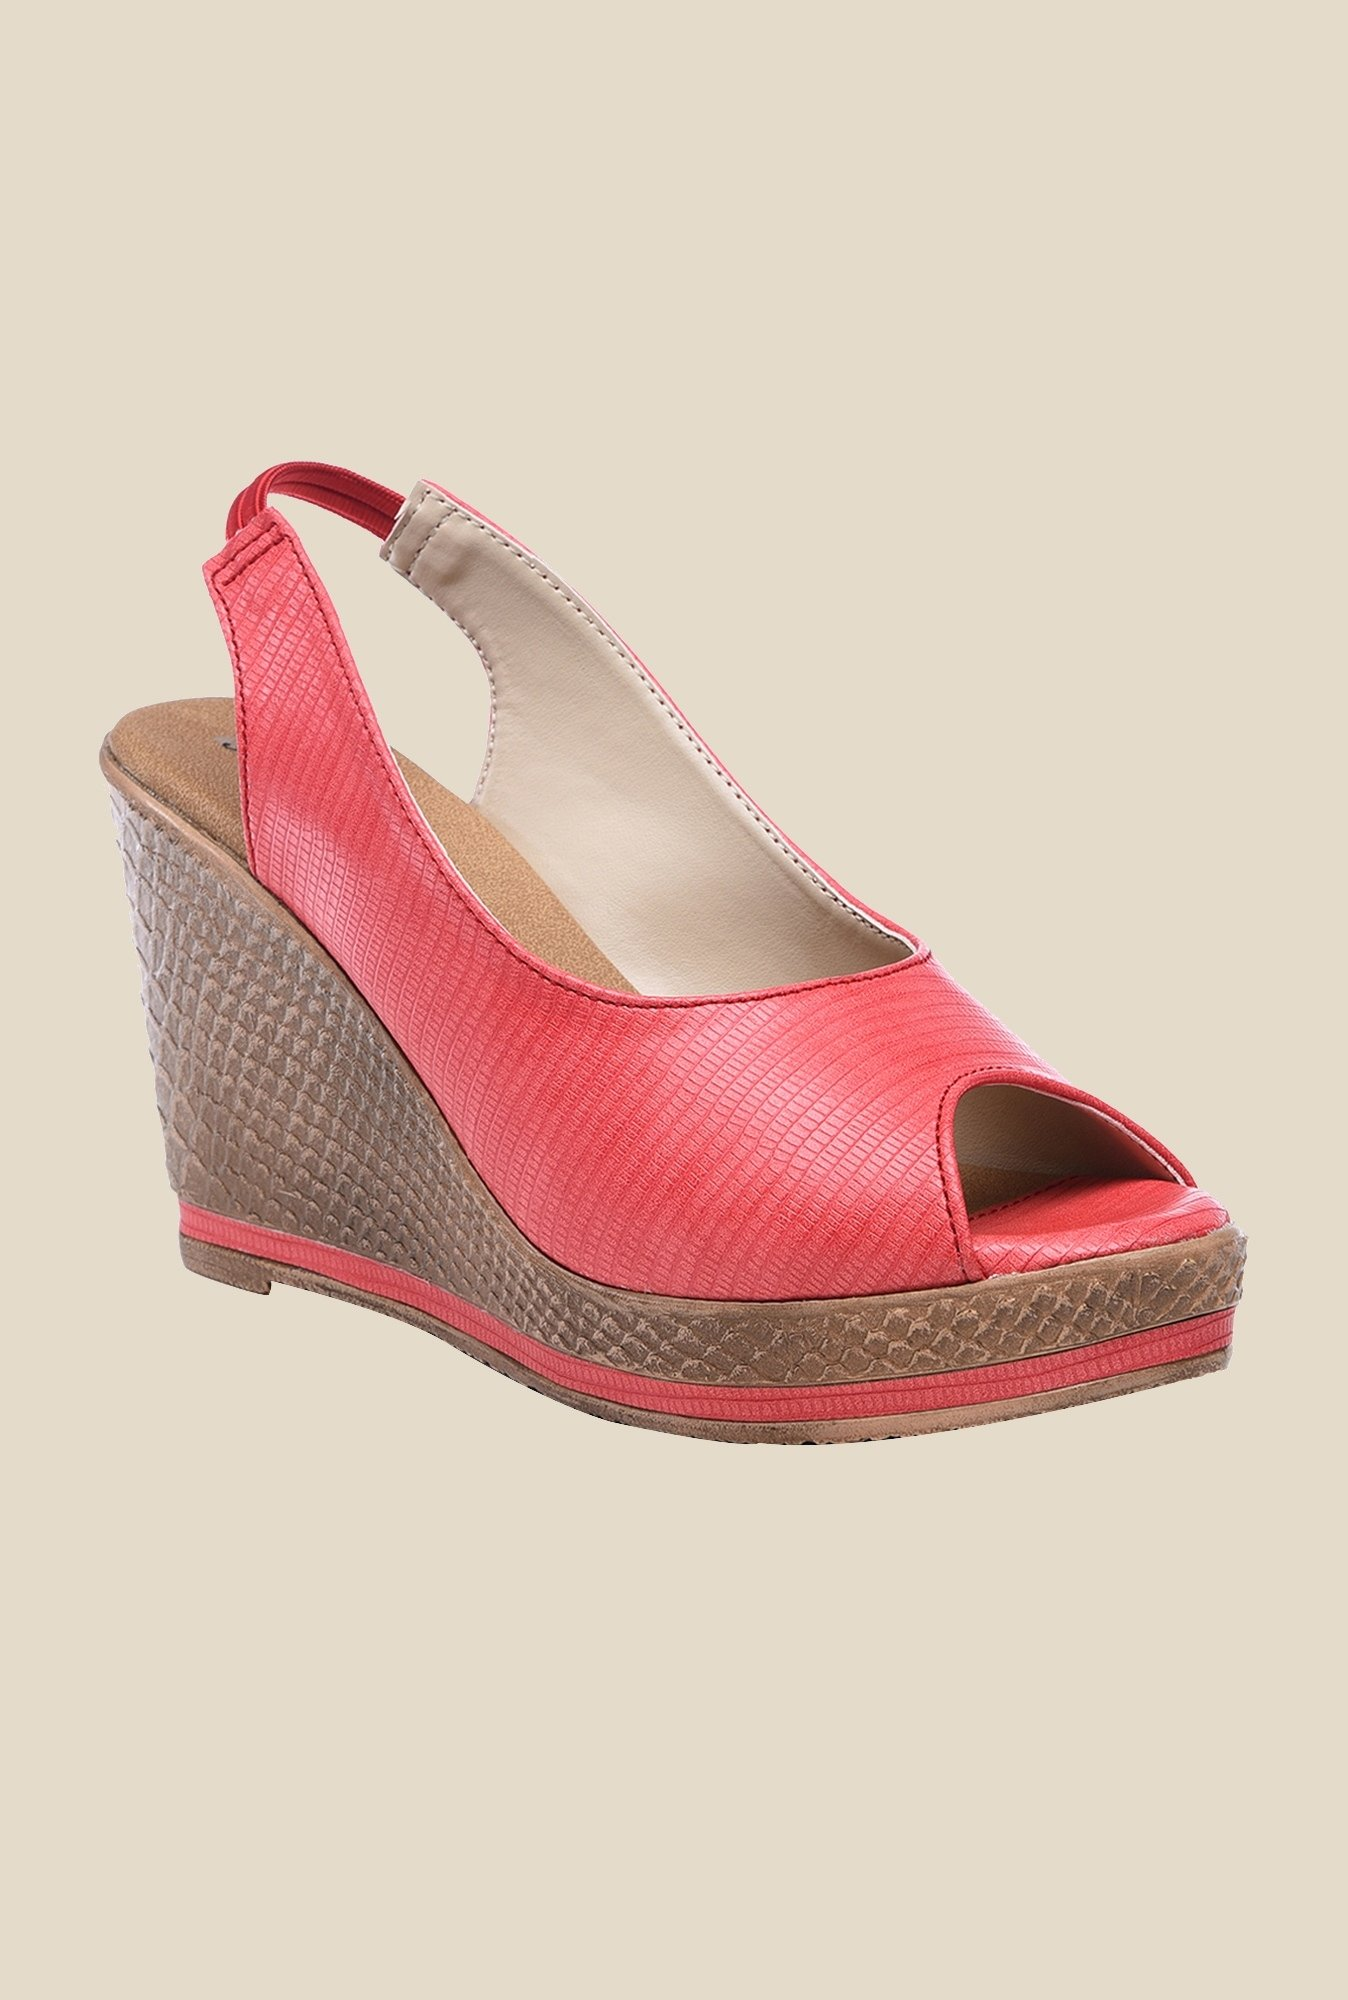 Bruno Manetti Red Sling Back Wedges